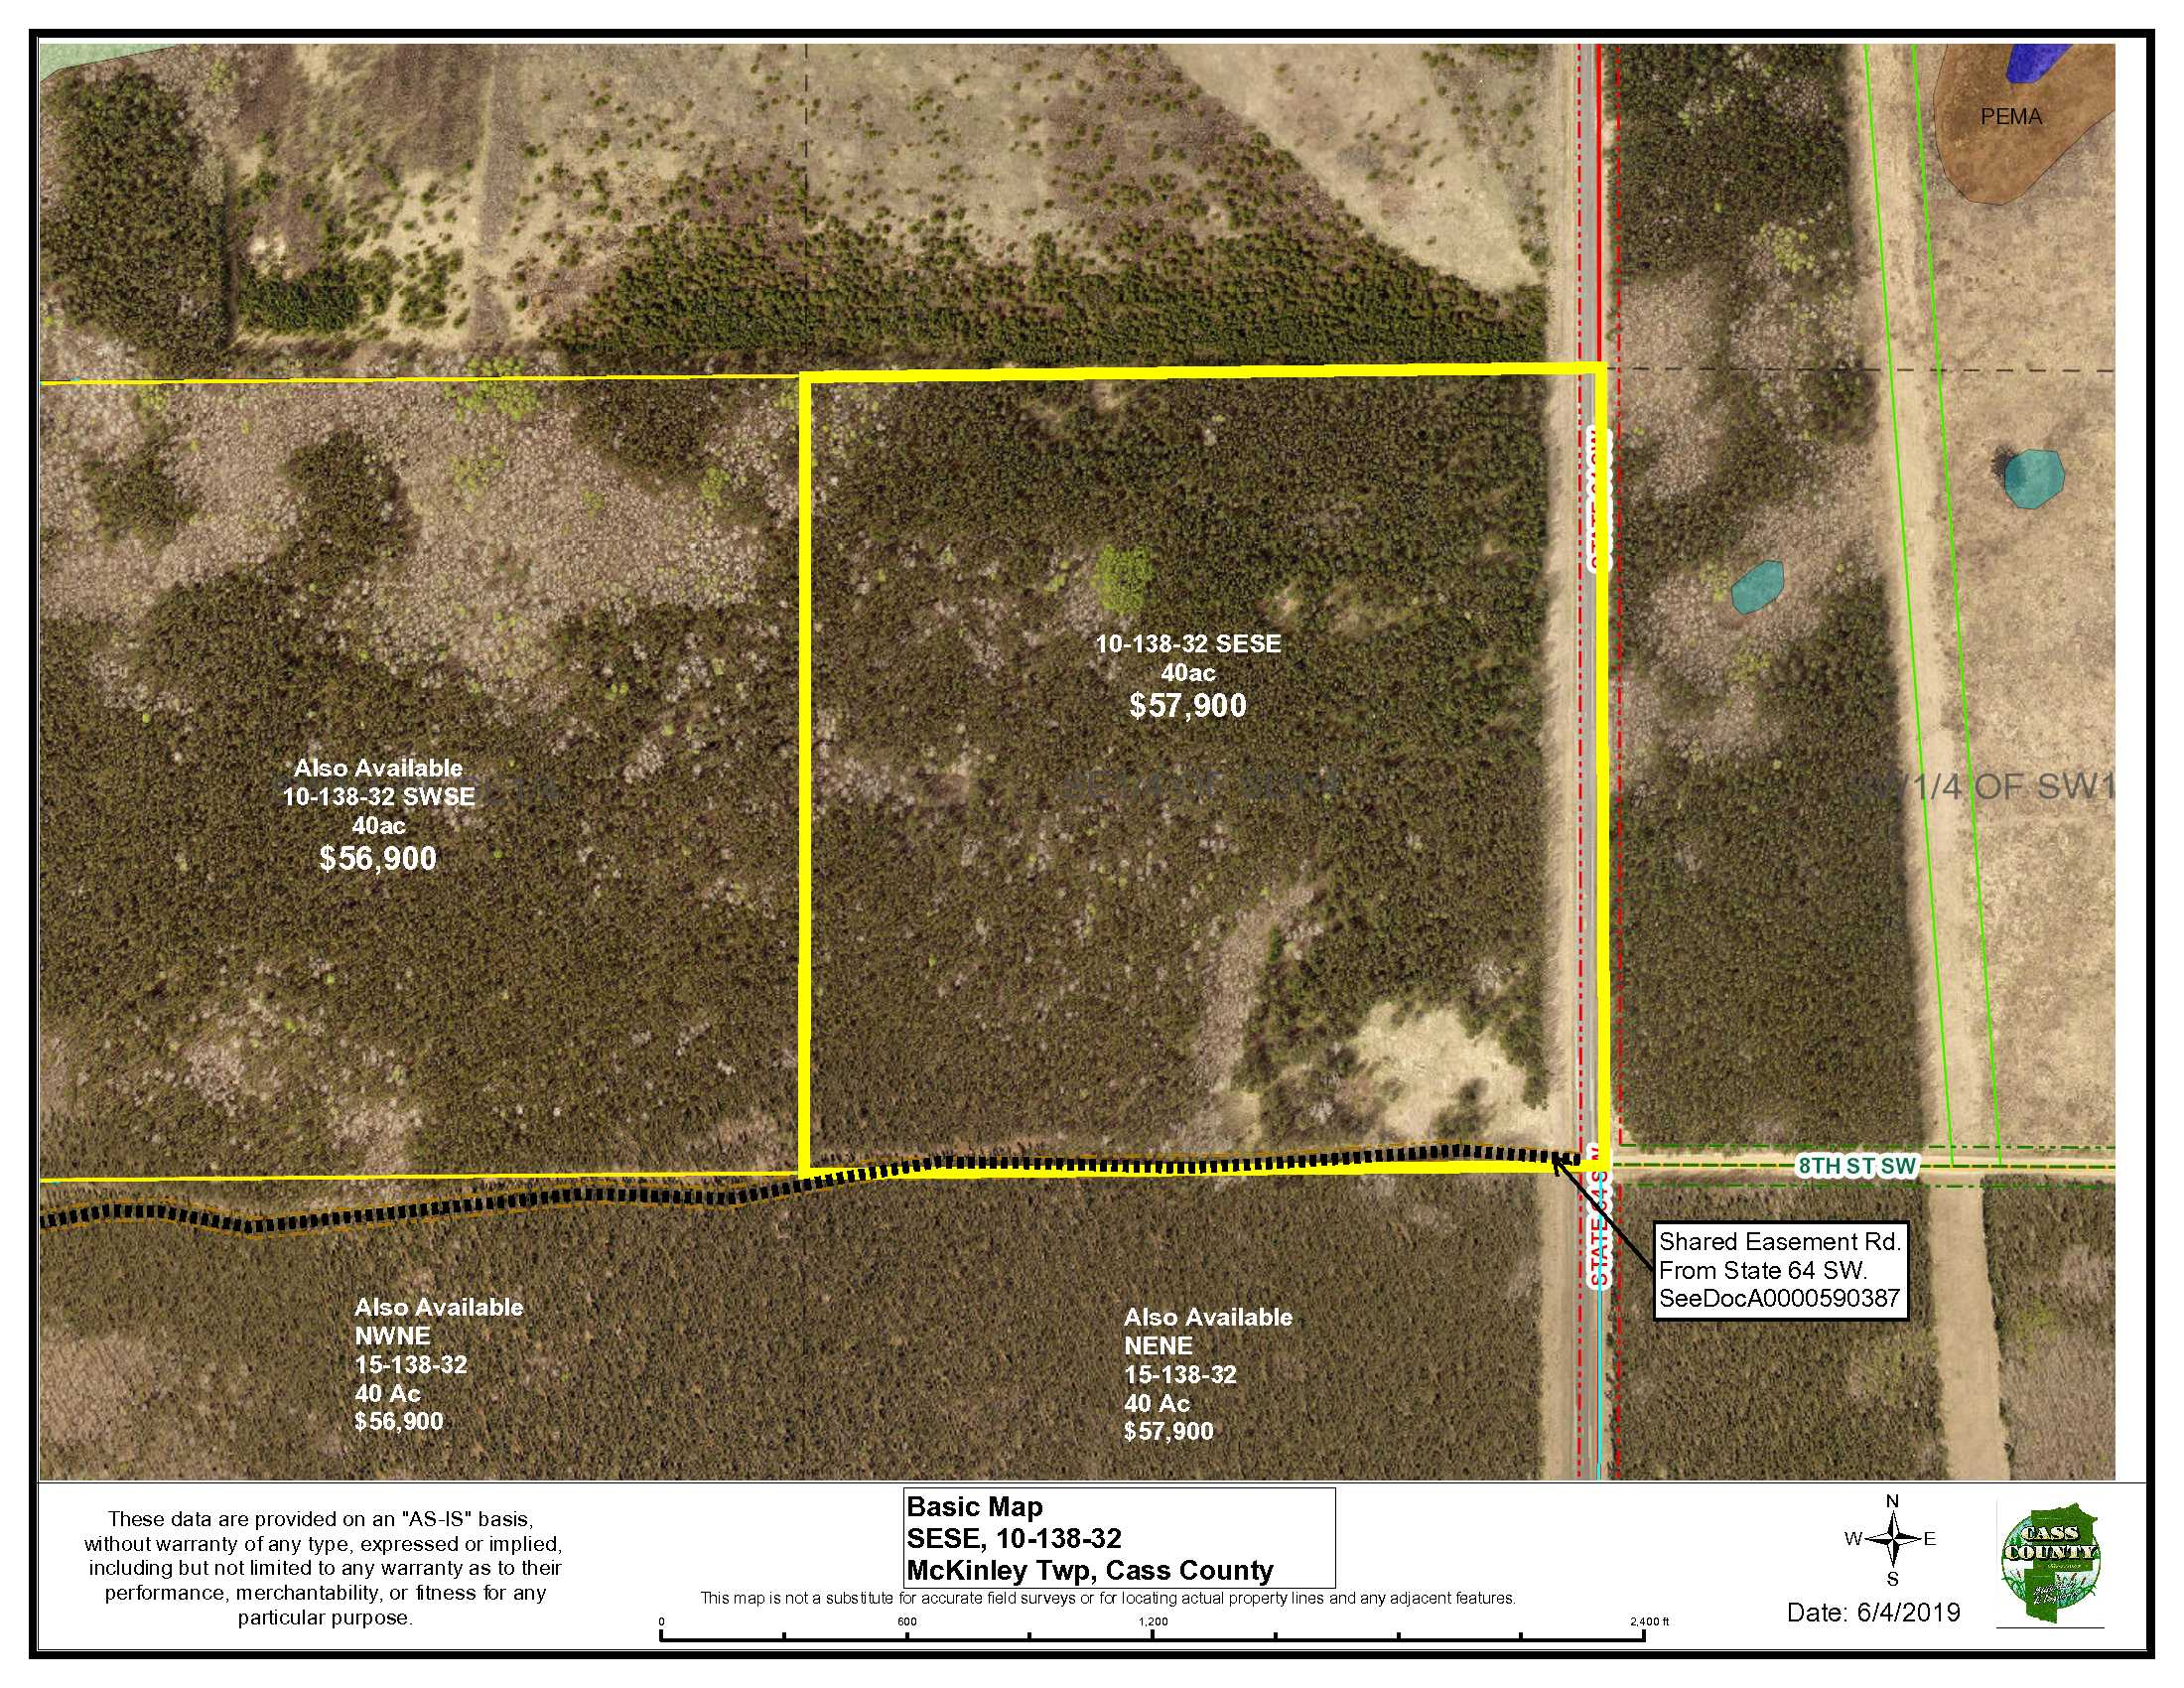 SESE, 10-138-32, State 64 SW, McKinley, Backus